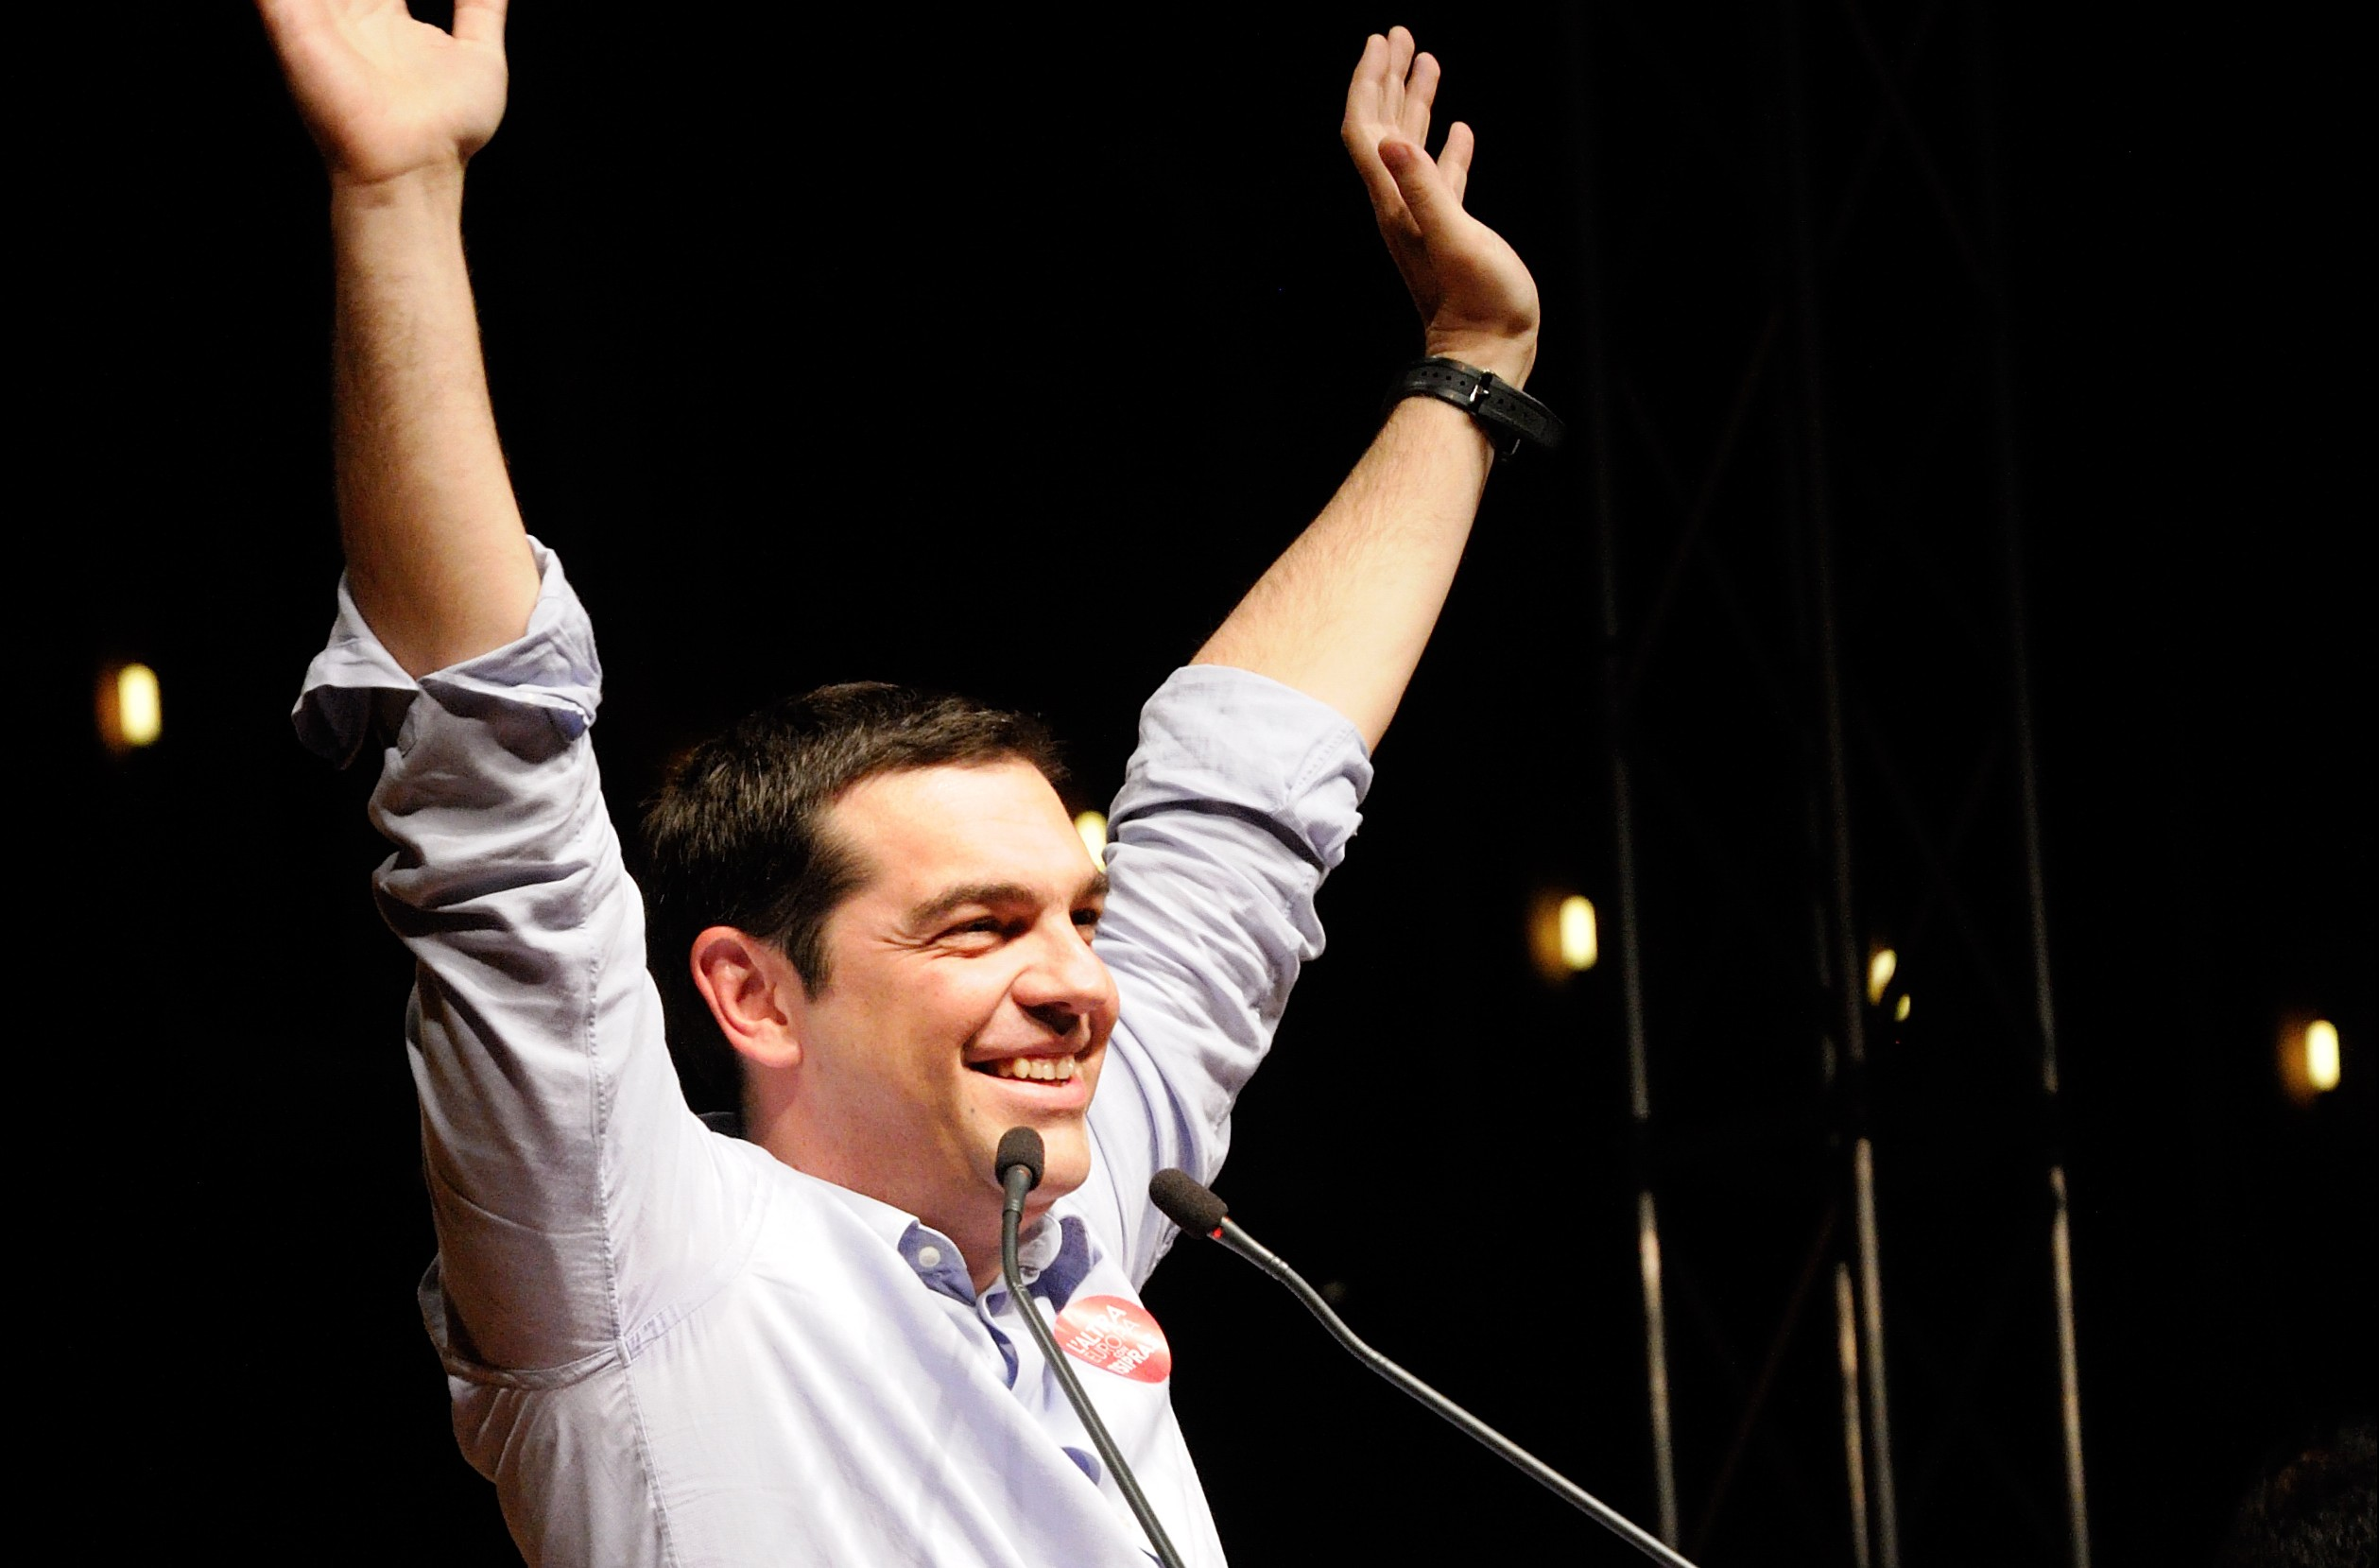 Tsipras. Photo: Lorenzo Gaudenzi, Flickr